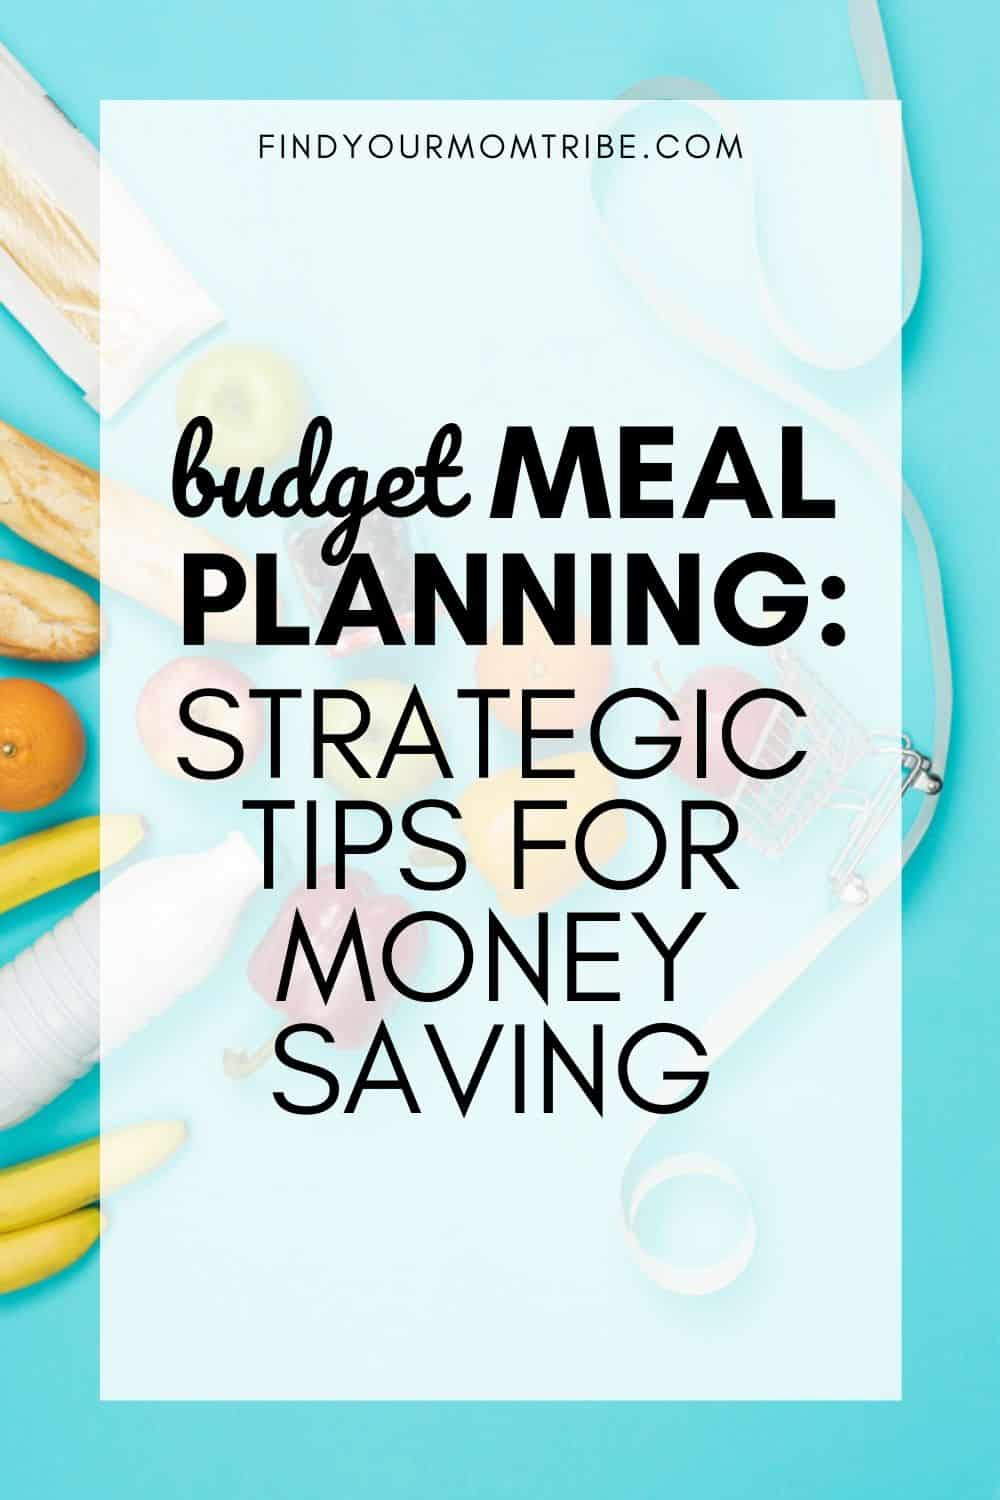 Budget Meal Planning